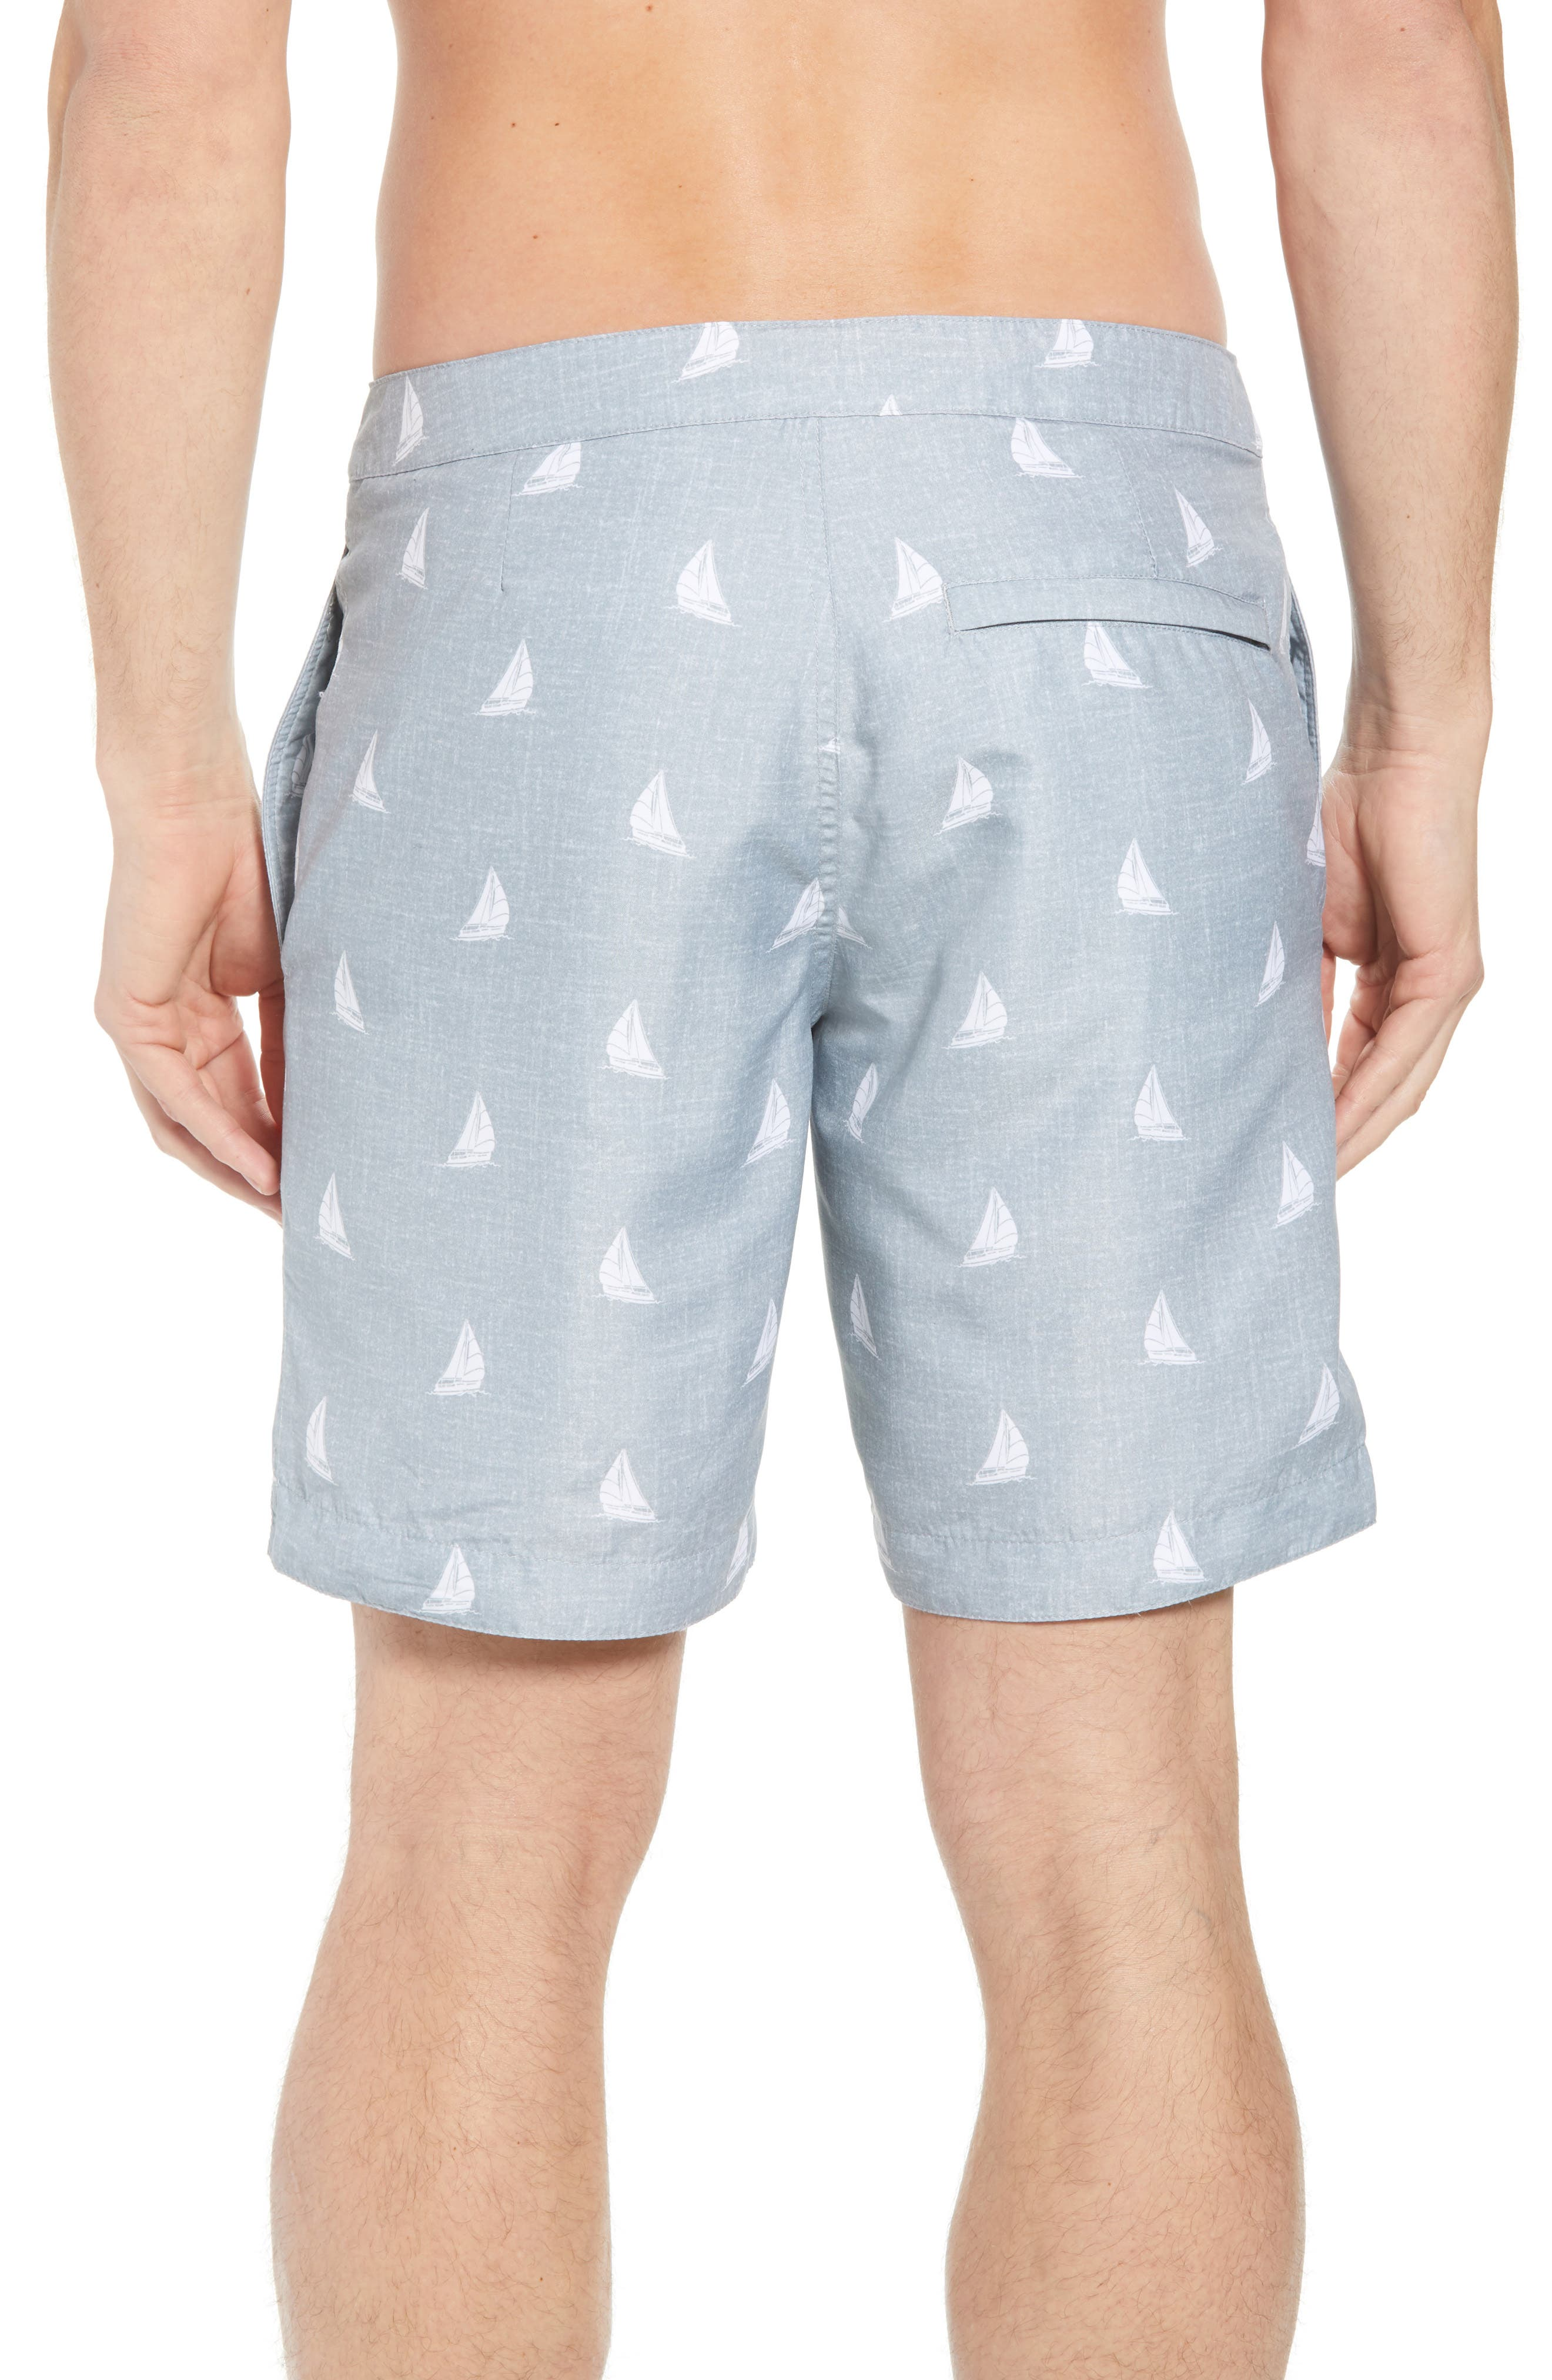 Aruba Slim Fit Swim Trunks,                             Alternate thumbnail 2, color,                             HEATHERED GREY SAILBOATS